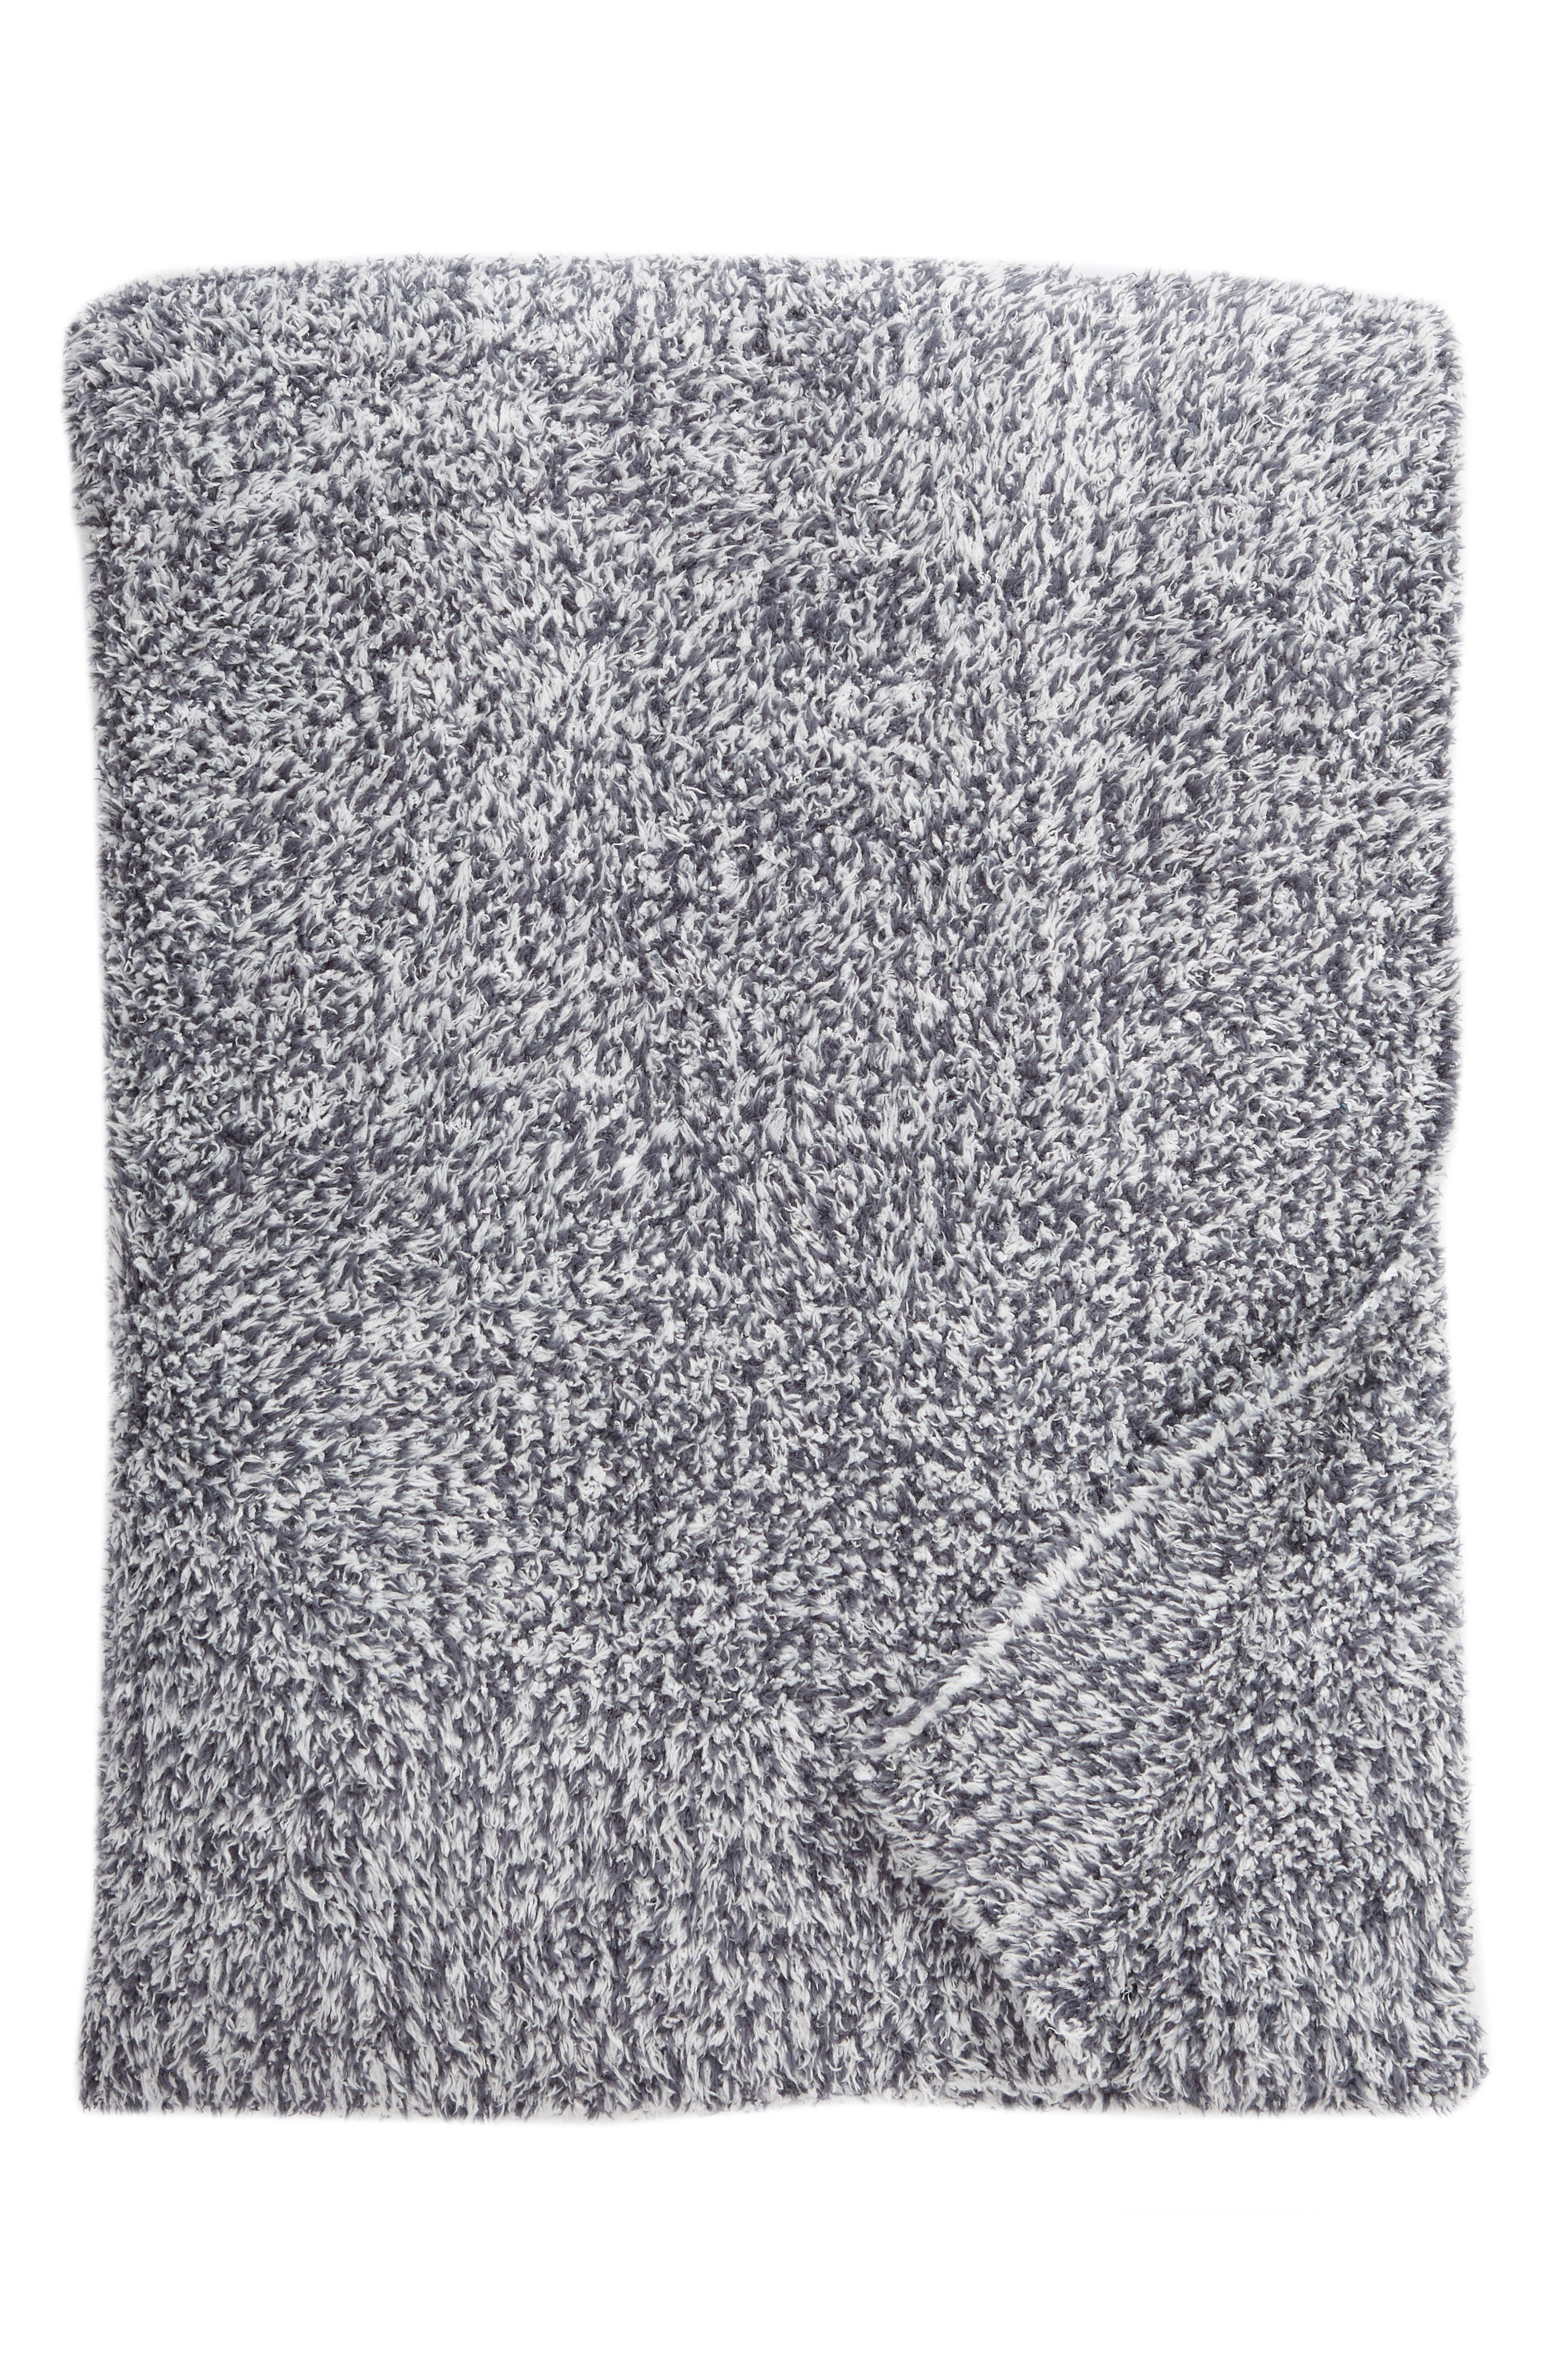 Cozychic<sup>®</sup> Heathered Throw Blanket,                         Main,                         color, Pacific Blue/ White